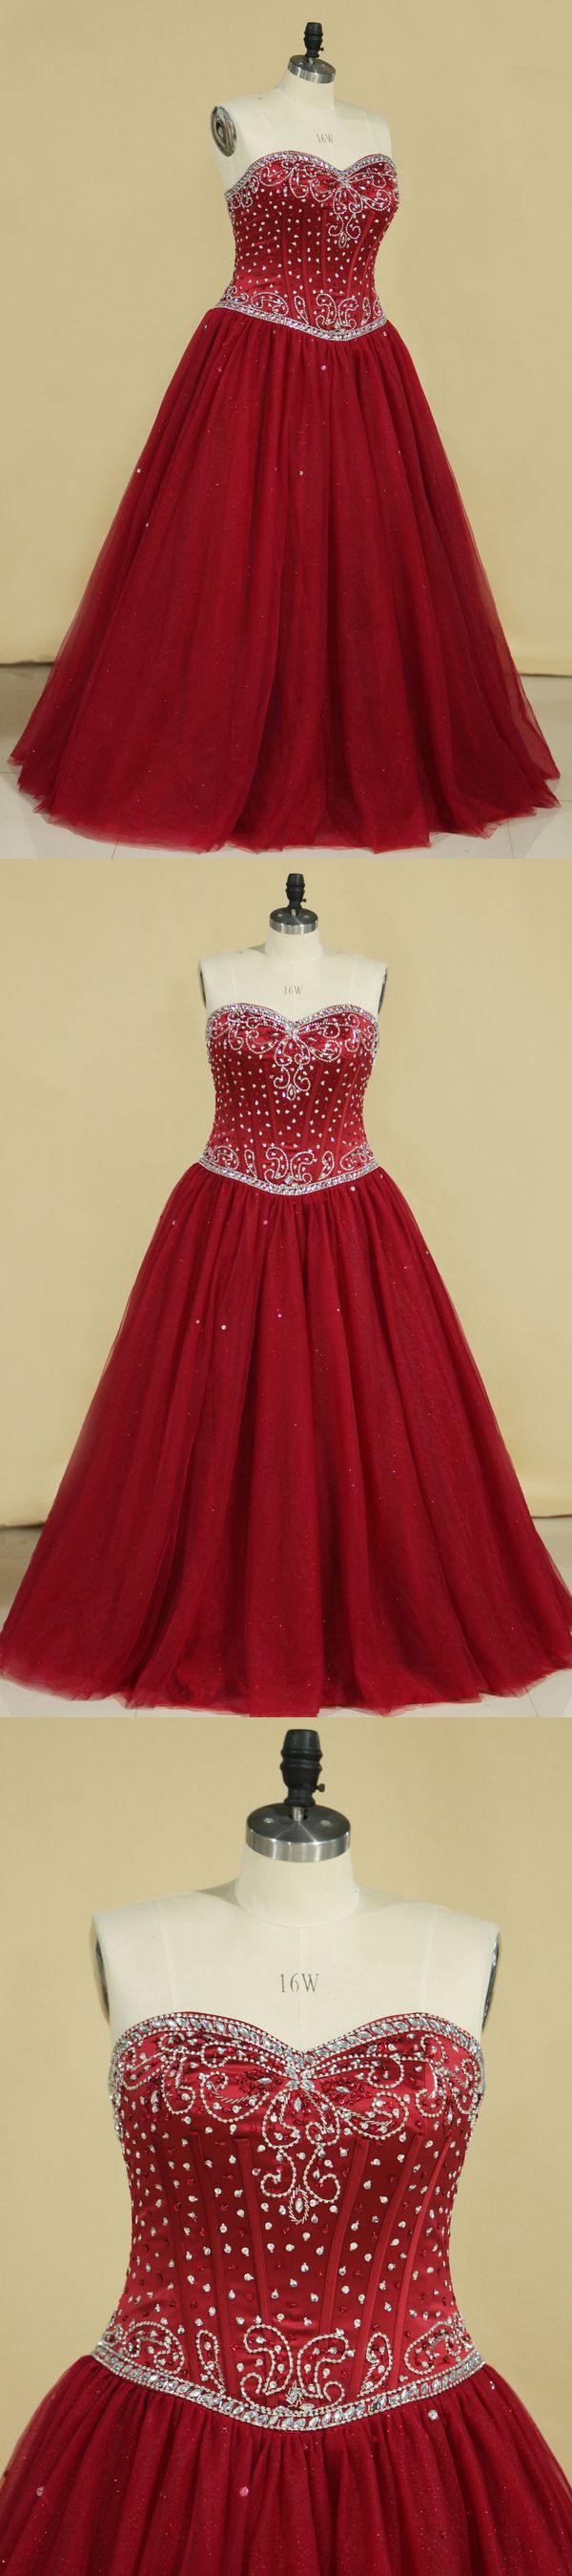 2019 Ball Gown Sweetheart Tulle With Beading Quinceanera Dresses